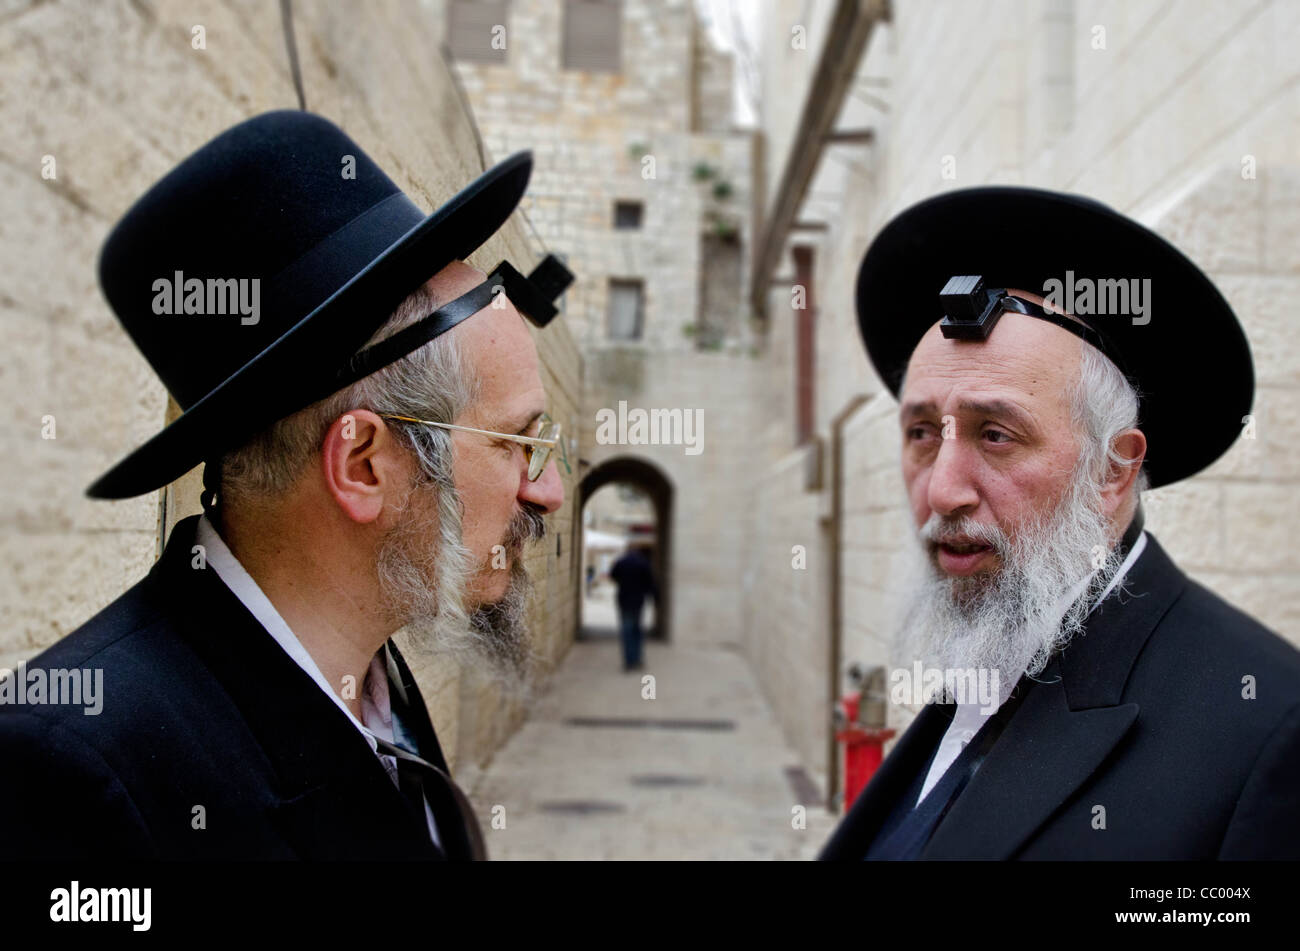 jewish single men in somerville Guide to the jewish man collage: includes getty images  what do women need to know about men, jewish men in particular hmm, tricky  dating jewish men the jewish chronicle.